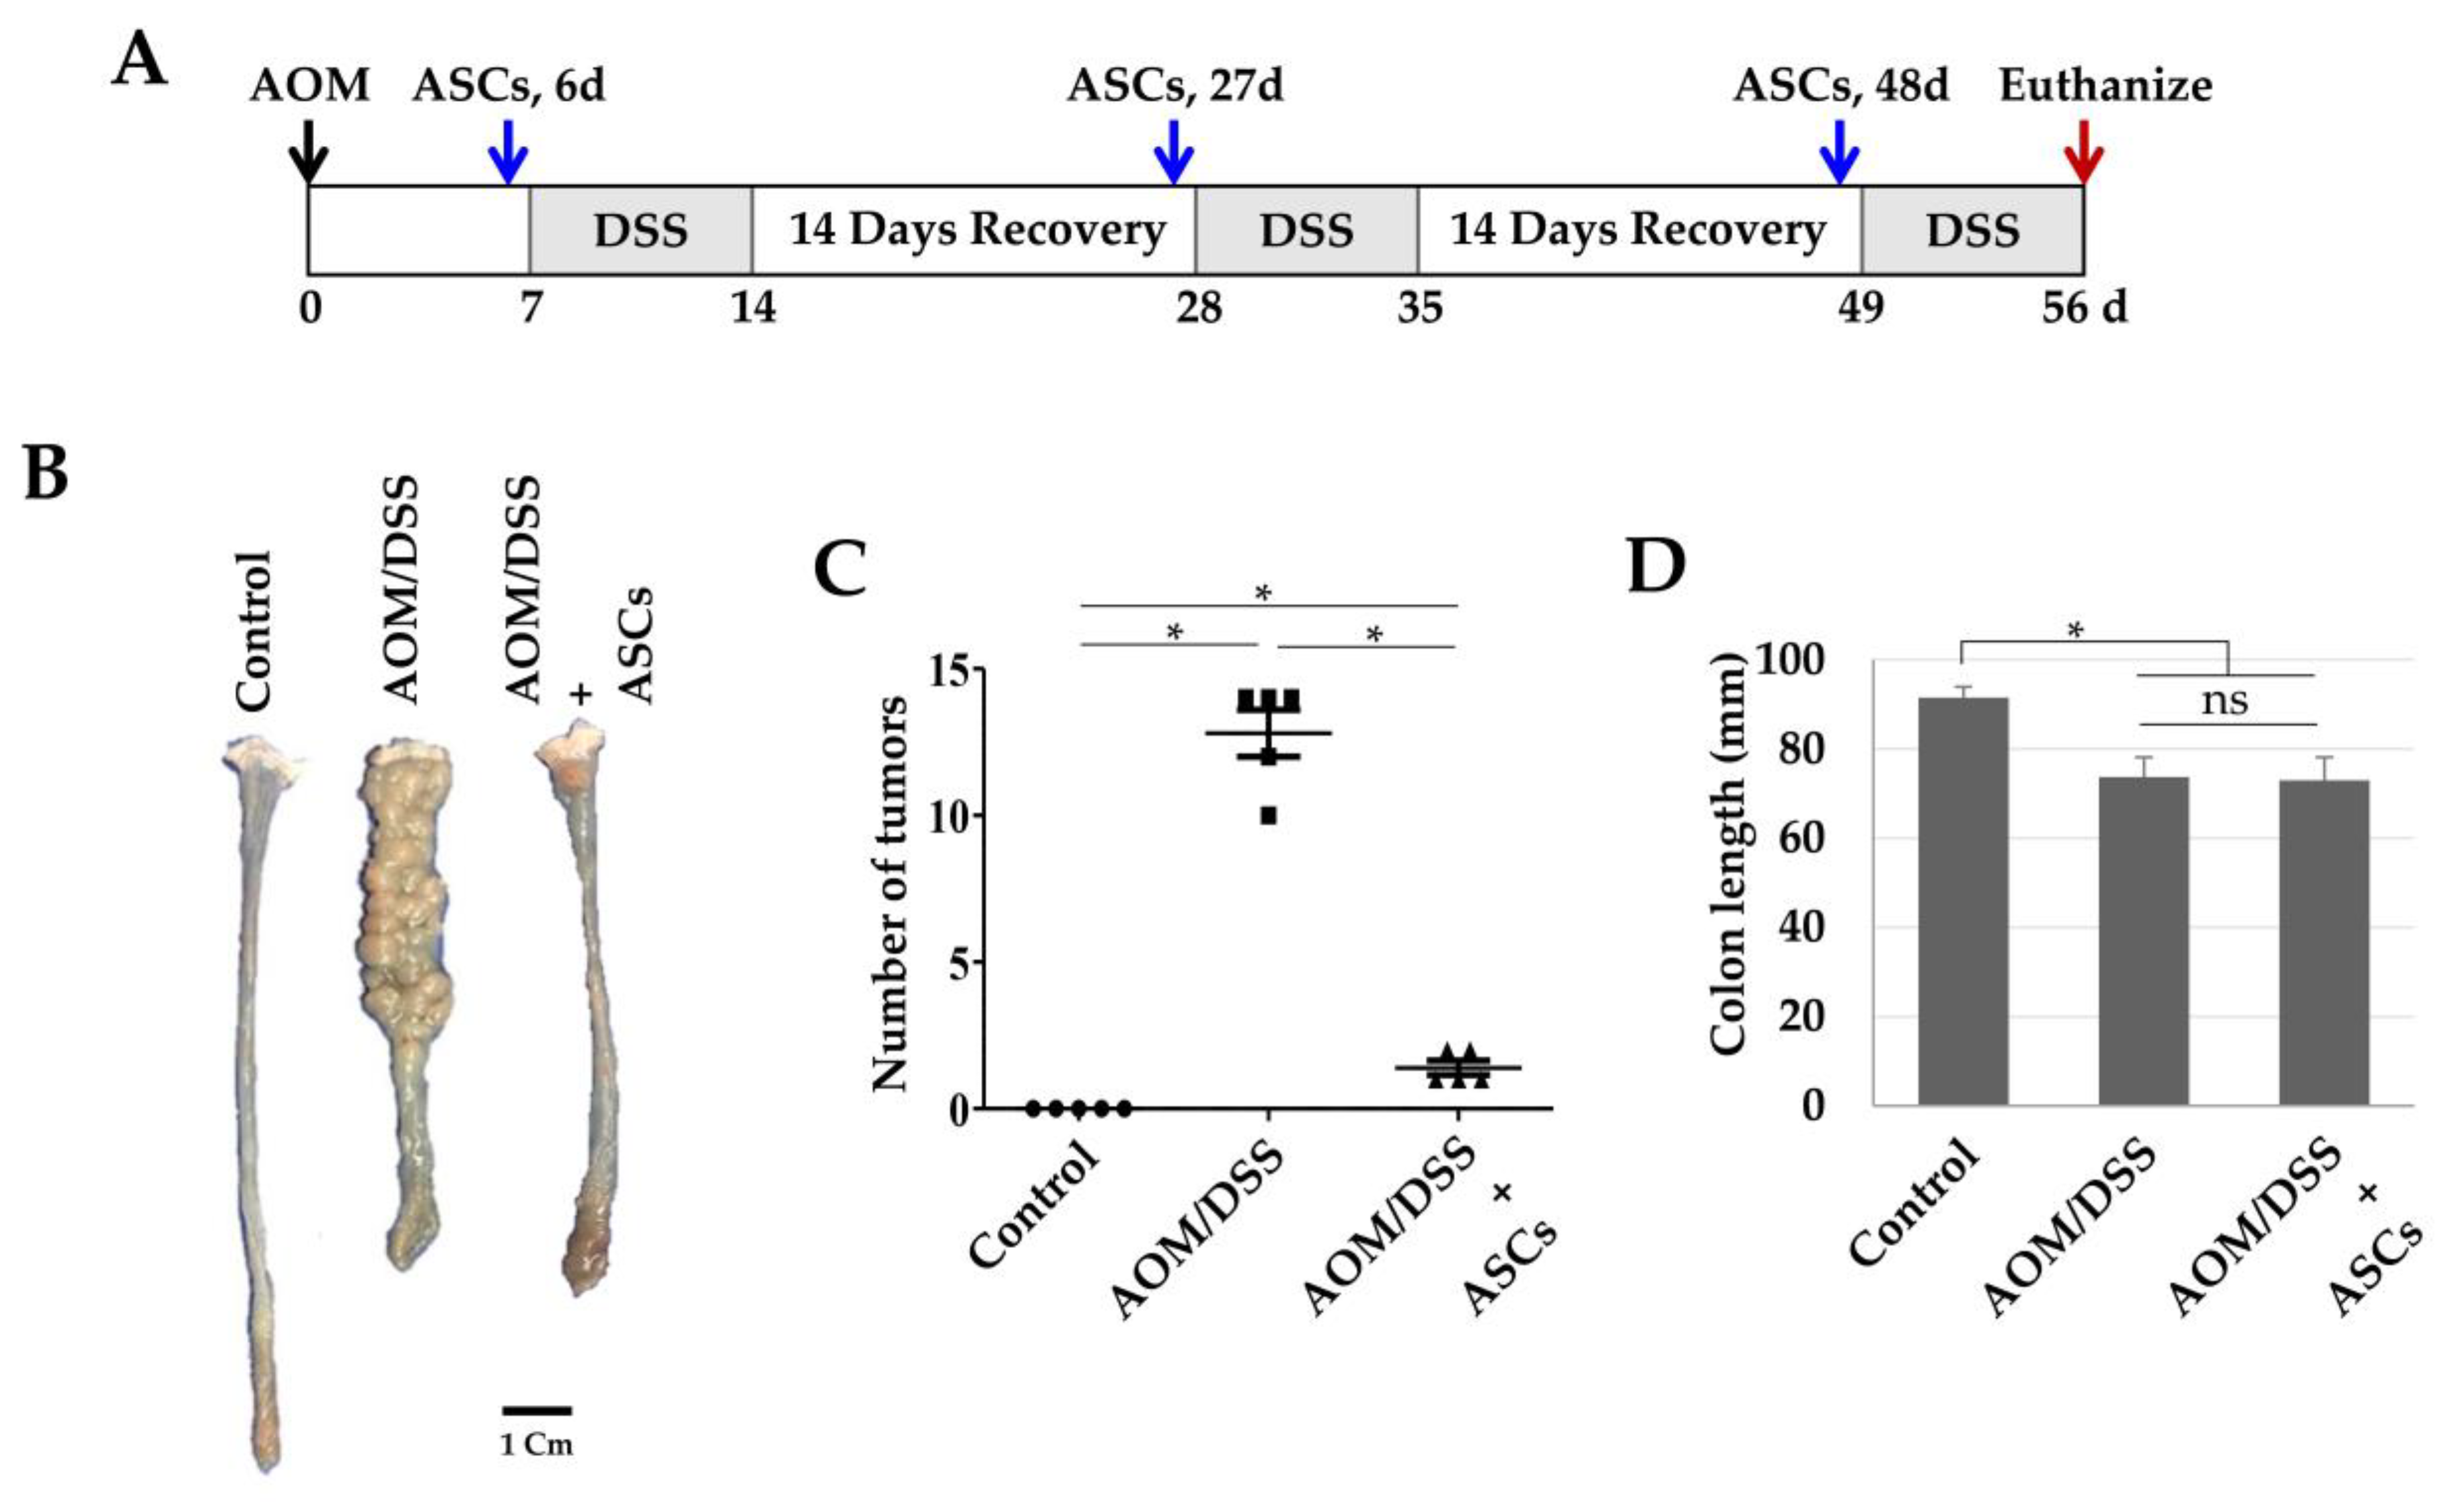 Ijms Free Full Text M1 Macrophages Promote Trail Expression In Adipose Tissue Derived Stem Cells Which Suppresses Colitis Associated Colon Cancer By Increasing Apoptosis Of Cd133 Cancer Stem Cells And Decreasing M2 Macrophage